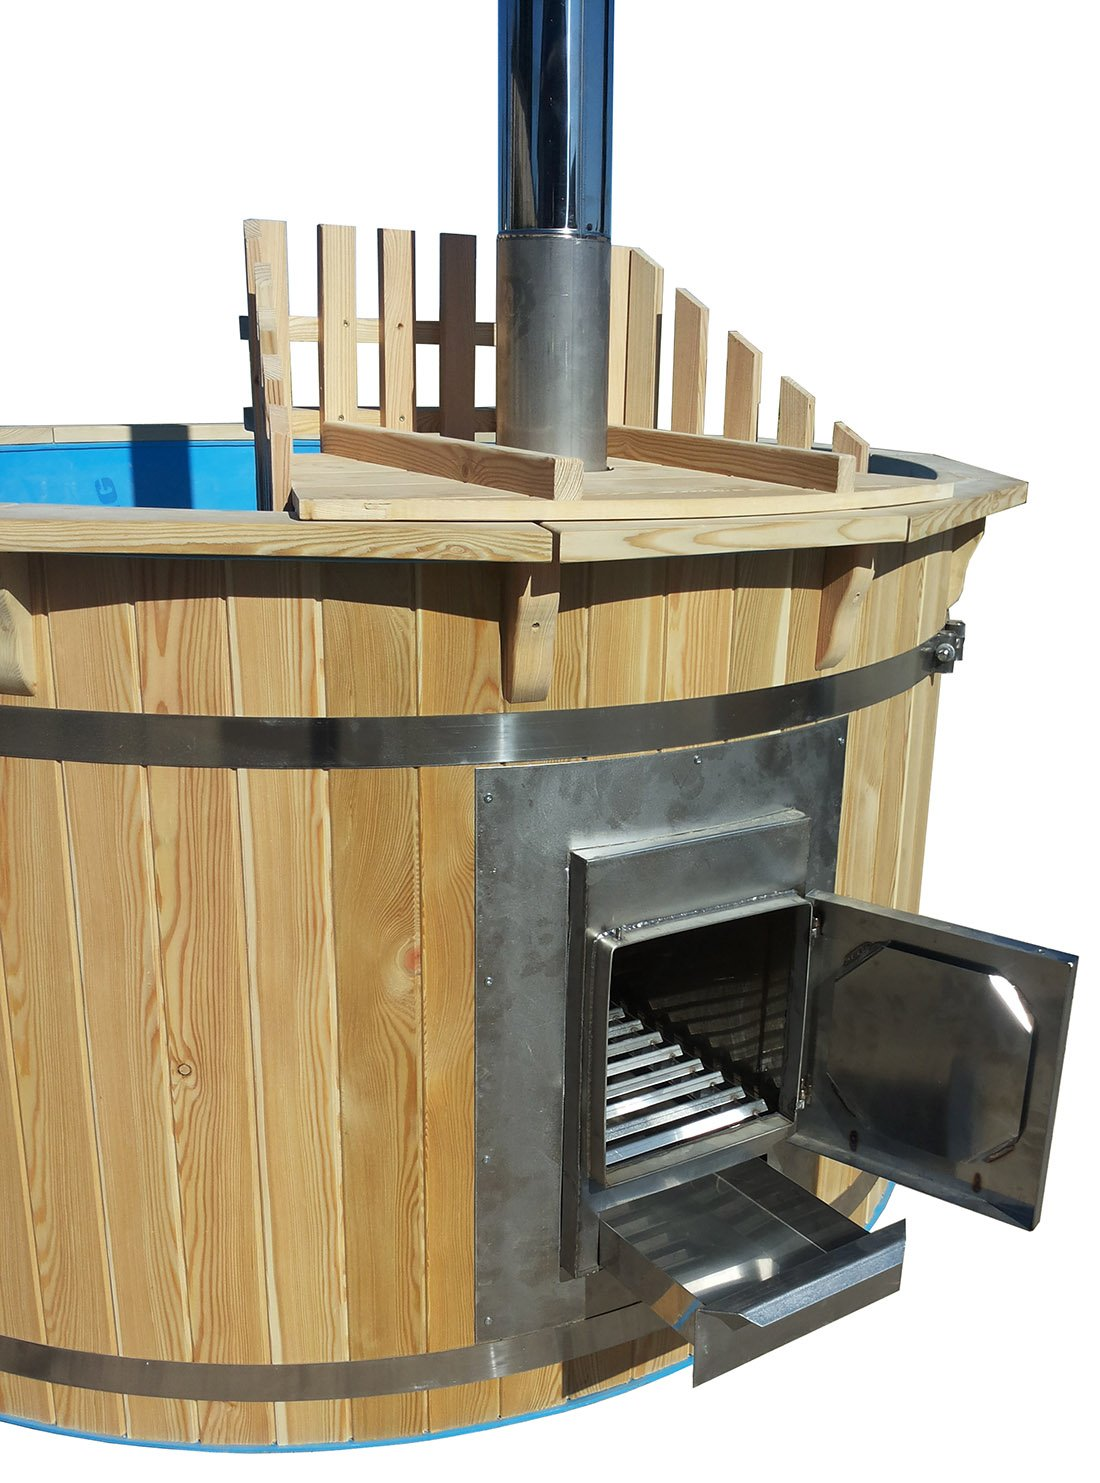 Hot tub with oven, 180 cm Sell-tex GmbH